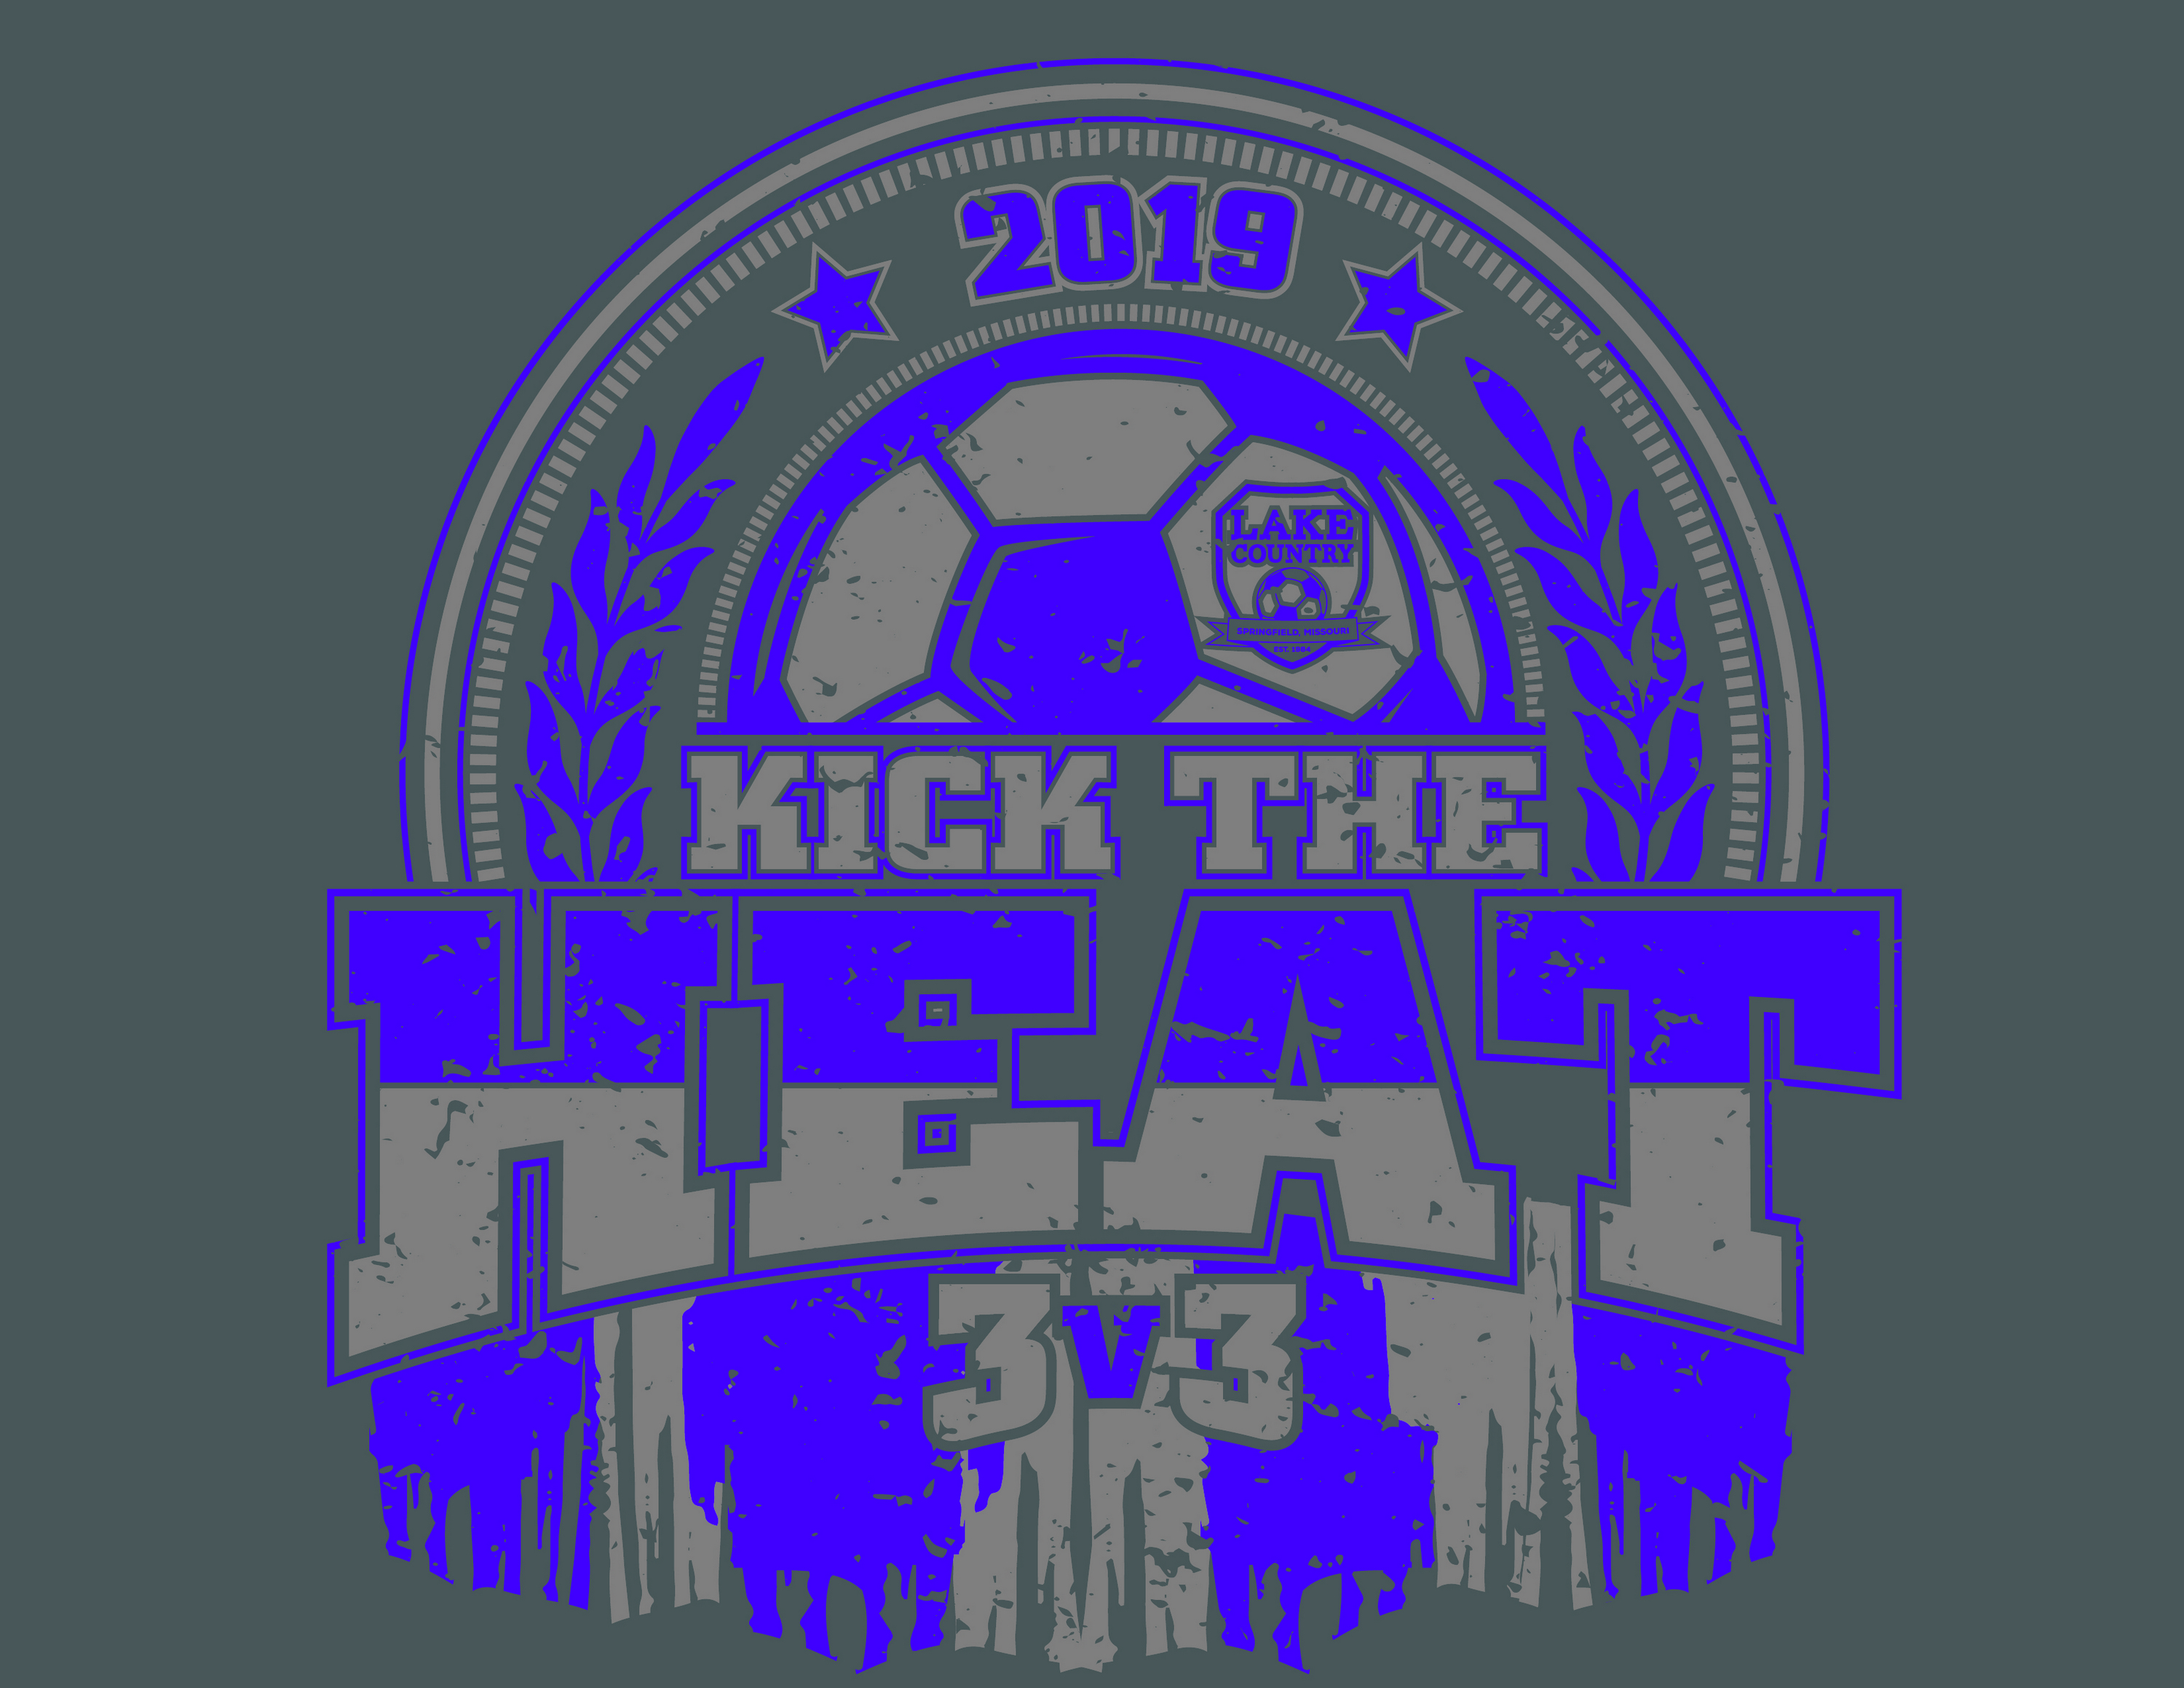 Registration Is Open For The Kick The Heat 3v3 Tournament